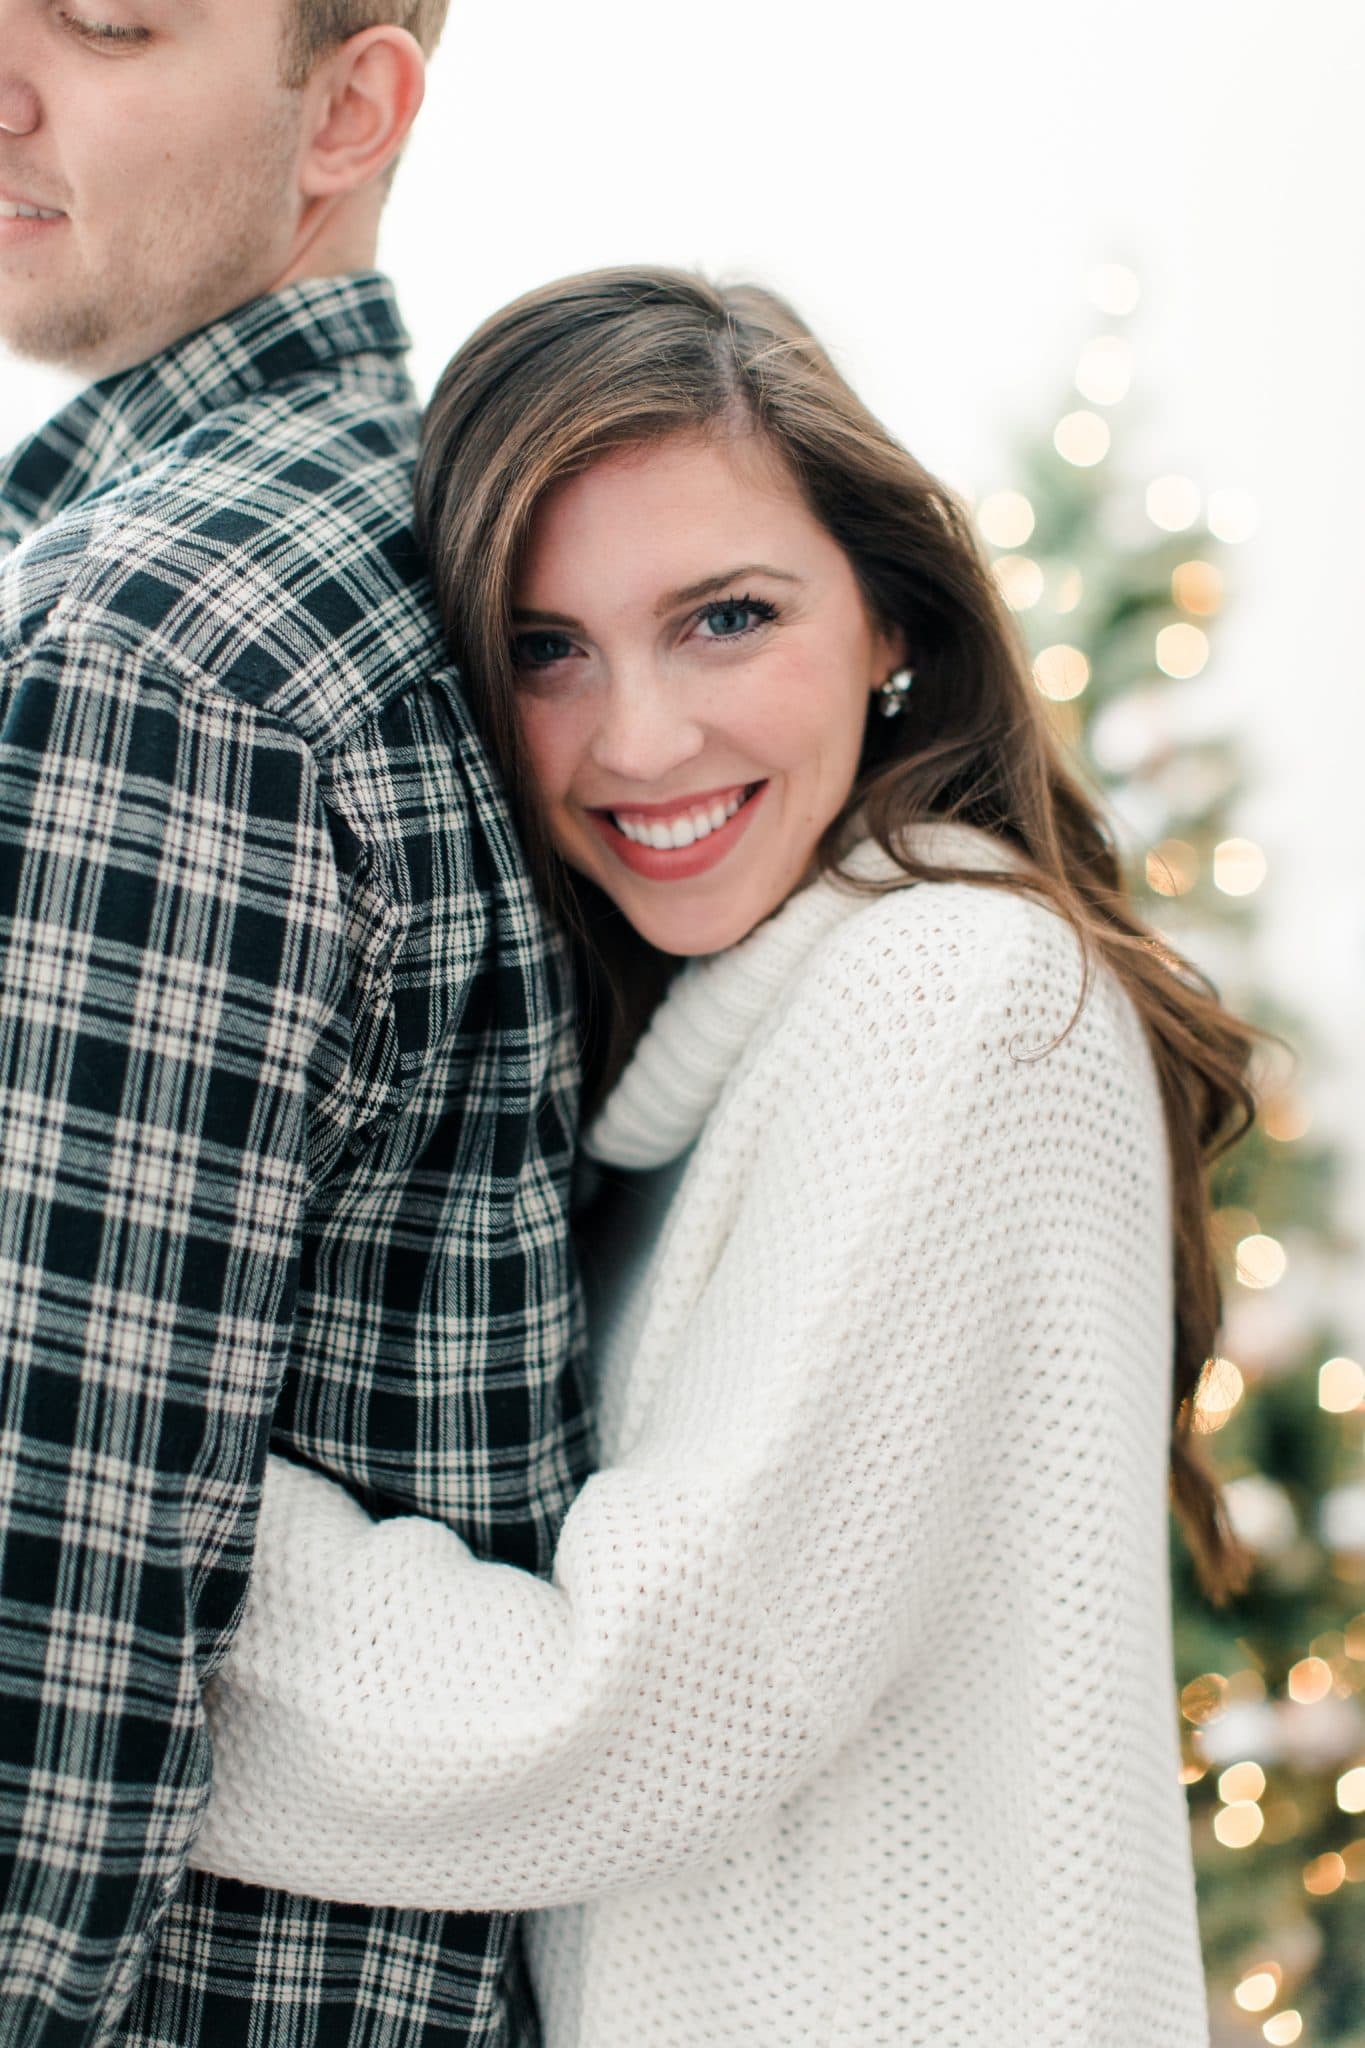 winter photography christmas photo idea, indoor cozy photoshoot, engagement photos, pretty in the pines, christmas apartment decor ideas, north carolina lifestyle travel blog, bluebarn photography, christmas card